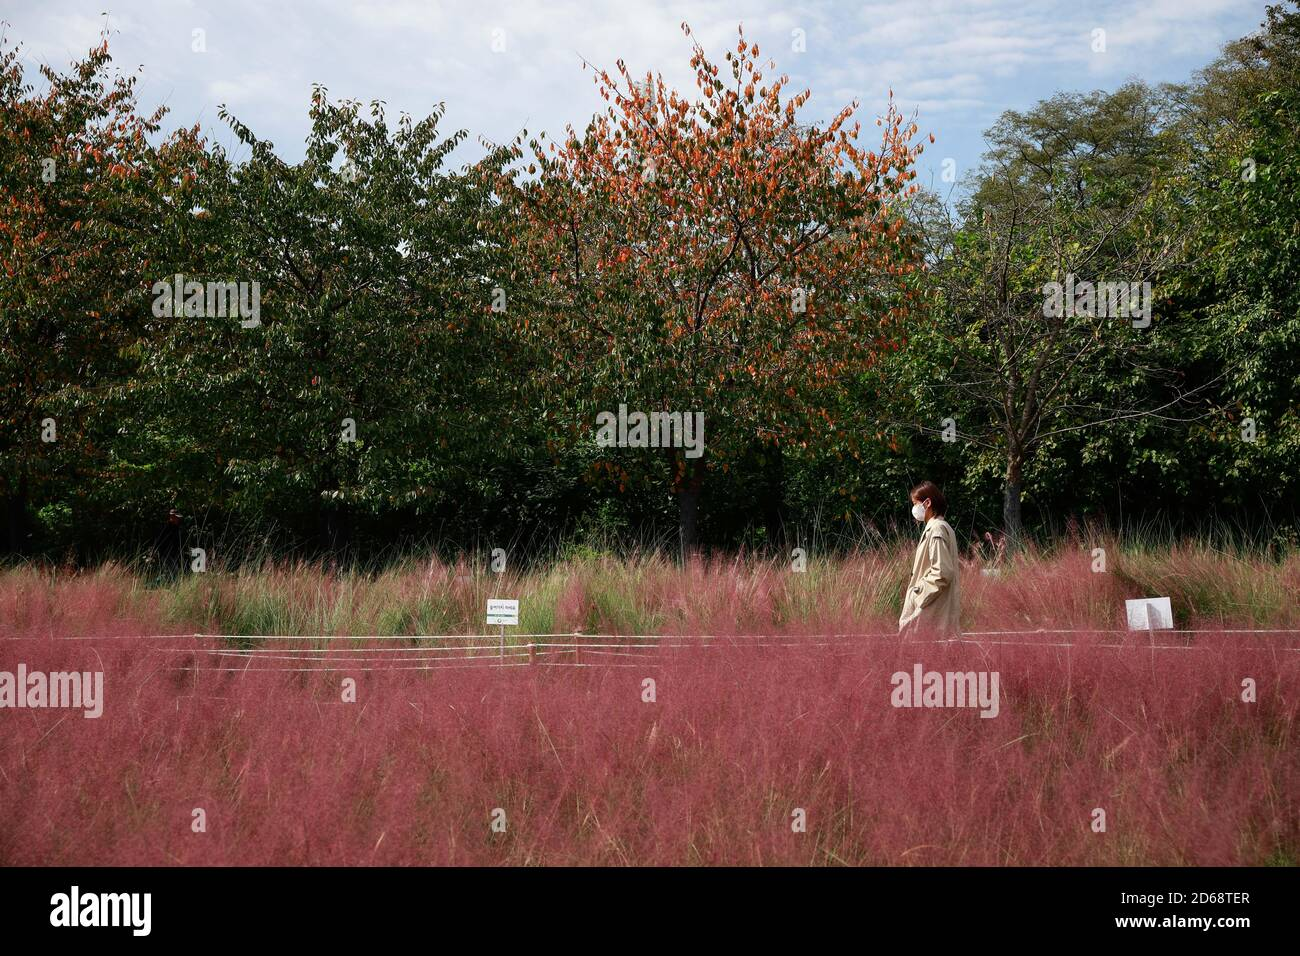 Seoul, South Korea. 15th Oct, 2020. A woman walks past a pink muhly grass field in the Olympic Park in Seoul, South Korea, Oct. 15, 2020. South Korea on Sunday decided to lower its three-tier social-distancing guidelines to the lowest level as the daily COVID-19 cases stayed relatively low in recent days. Many residents choose to come to parks for outdoor activities amid the autumn season. Credit: Wang Jingqiang/Xinhua/Alamy Live News Stock Photo